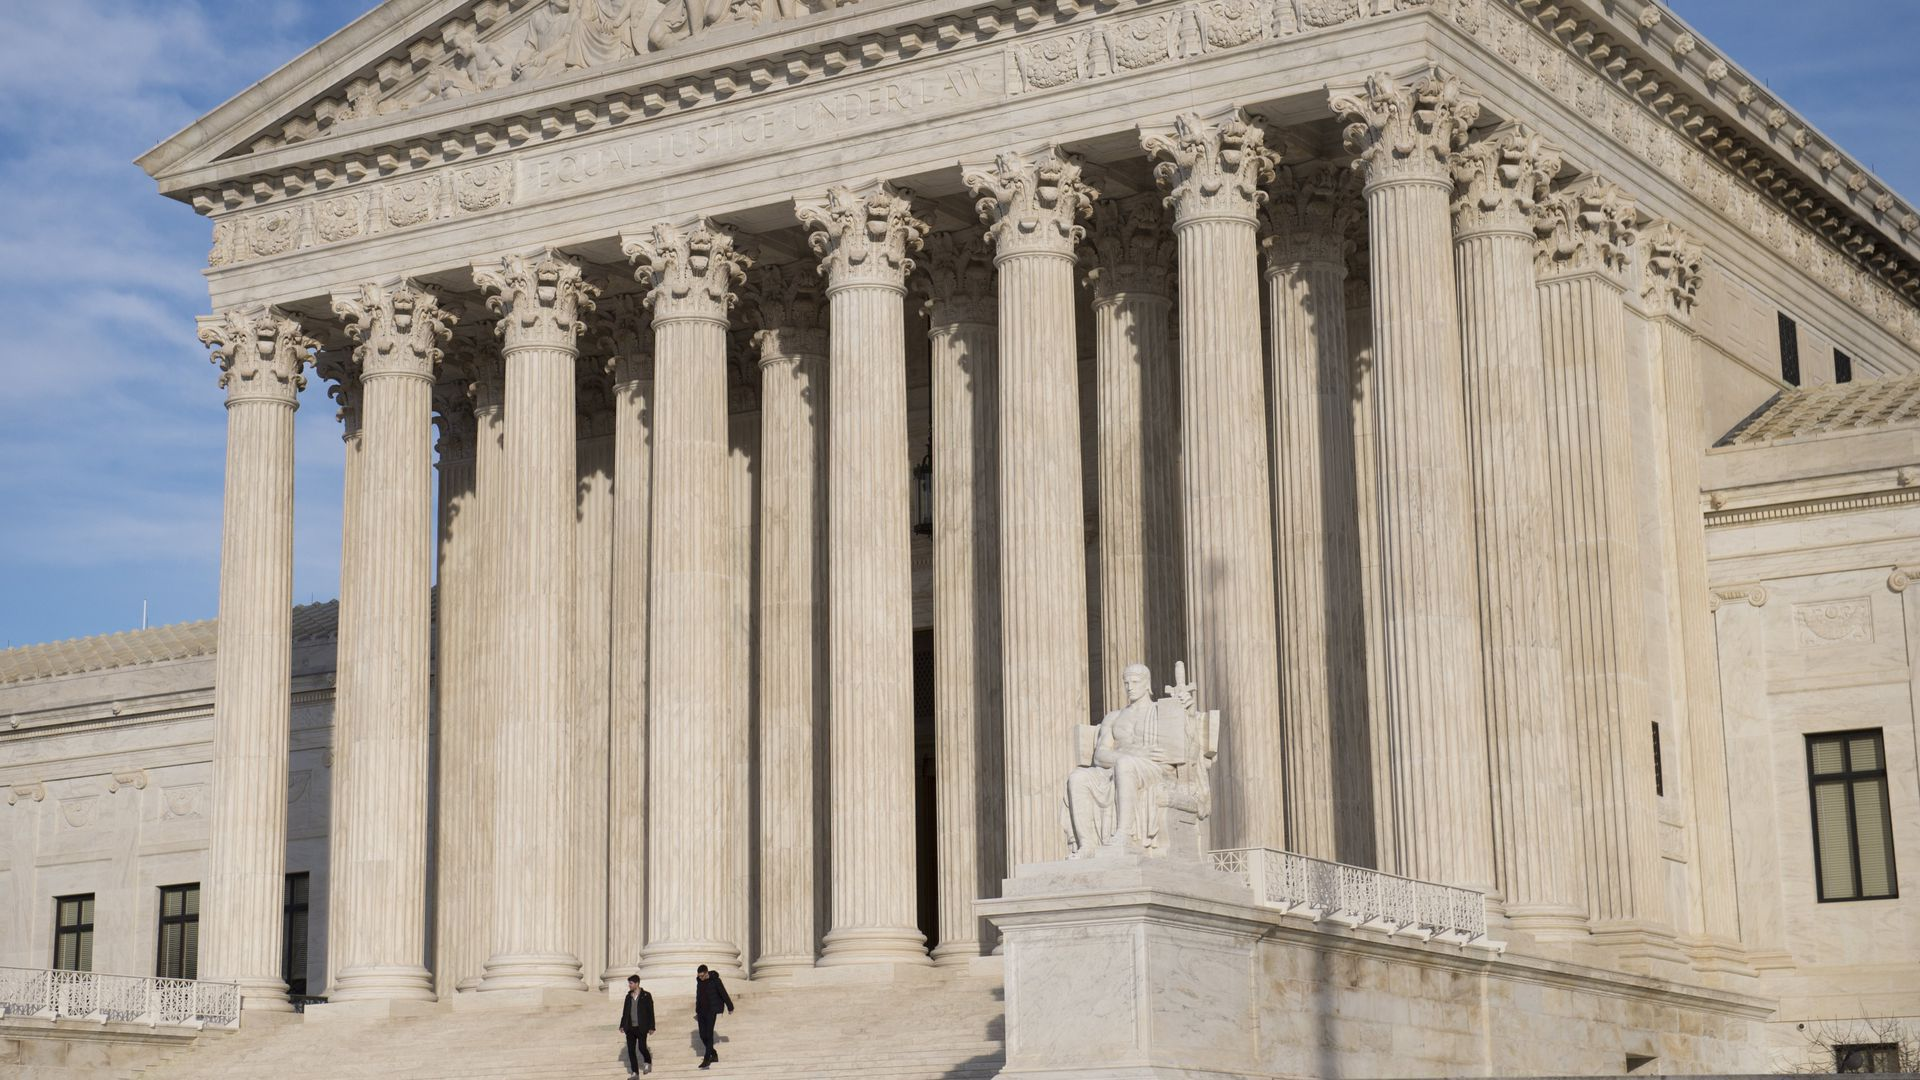 Pennsylvania Gop Asks Supreme Court To Block New Congressional Map - Us-supreme-court-map